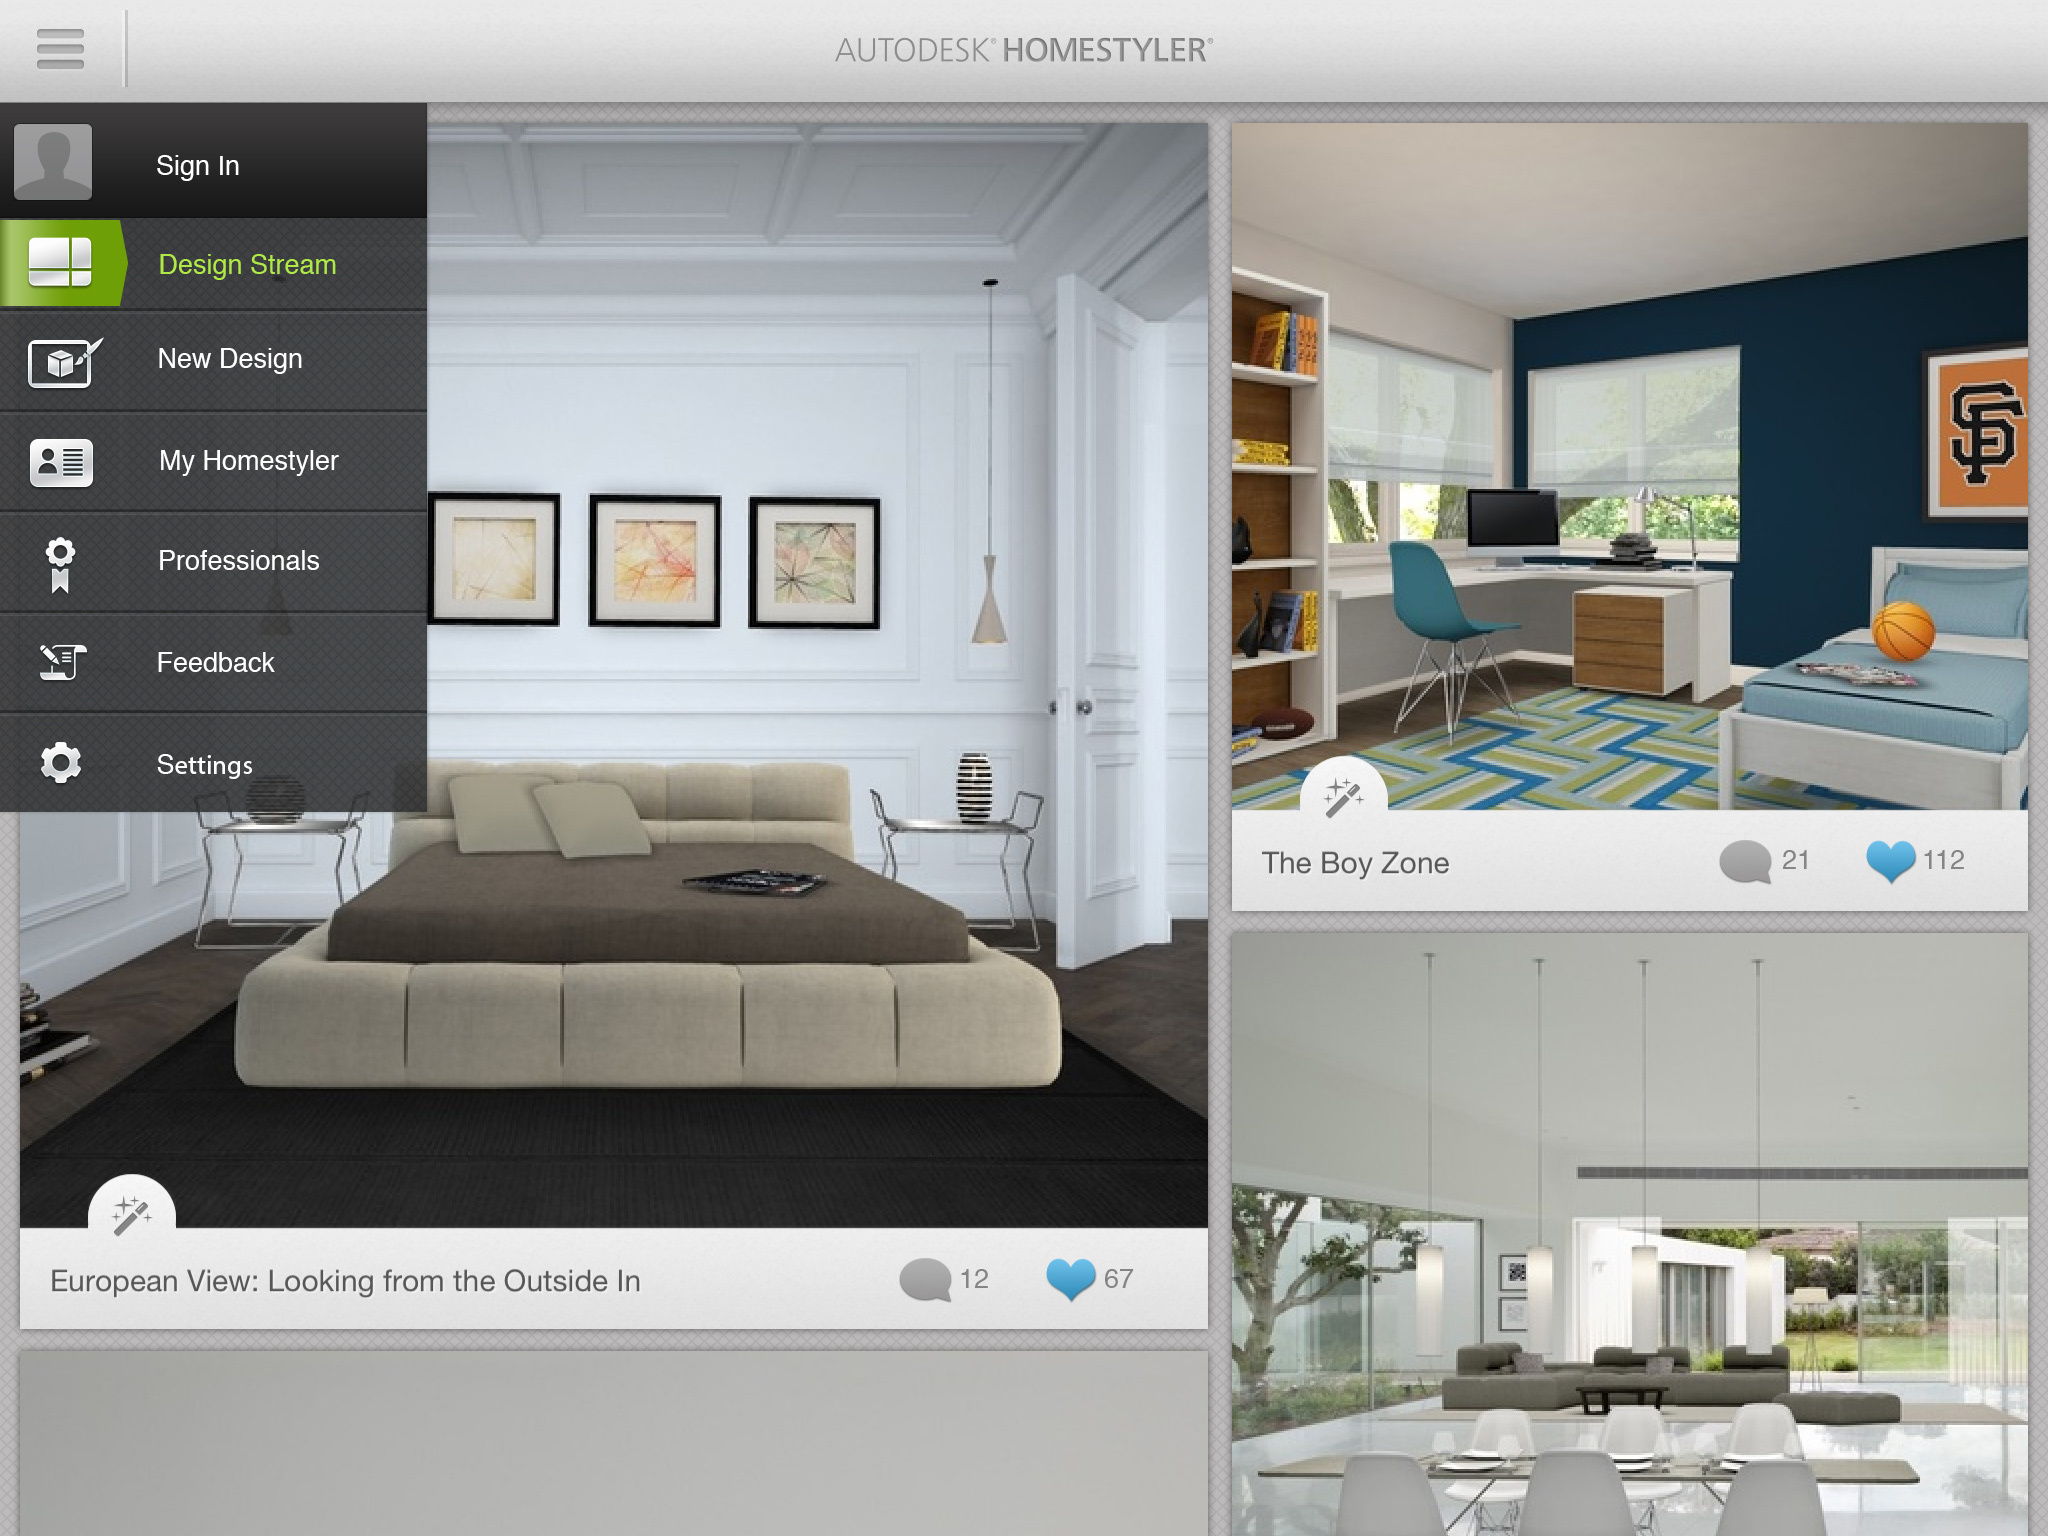 New autodesk homestyler app transforms your living space Create a blueprint online